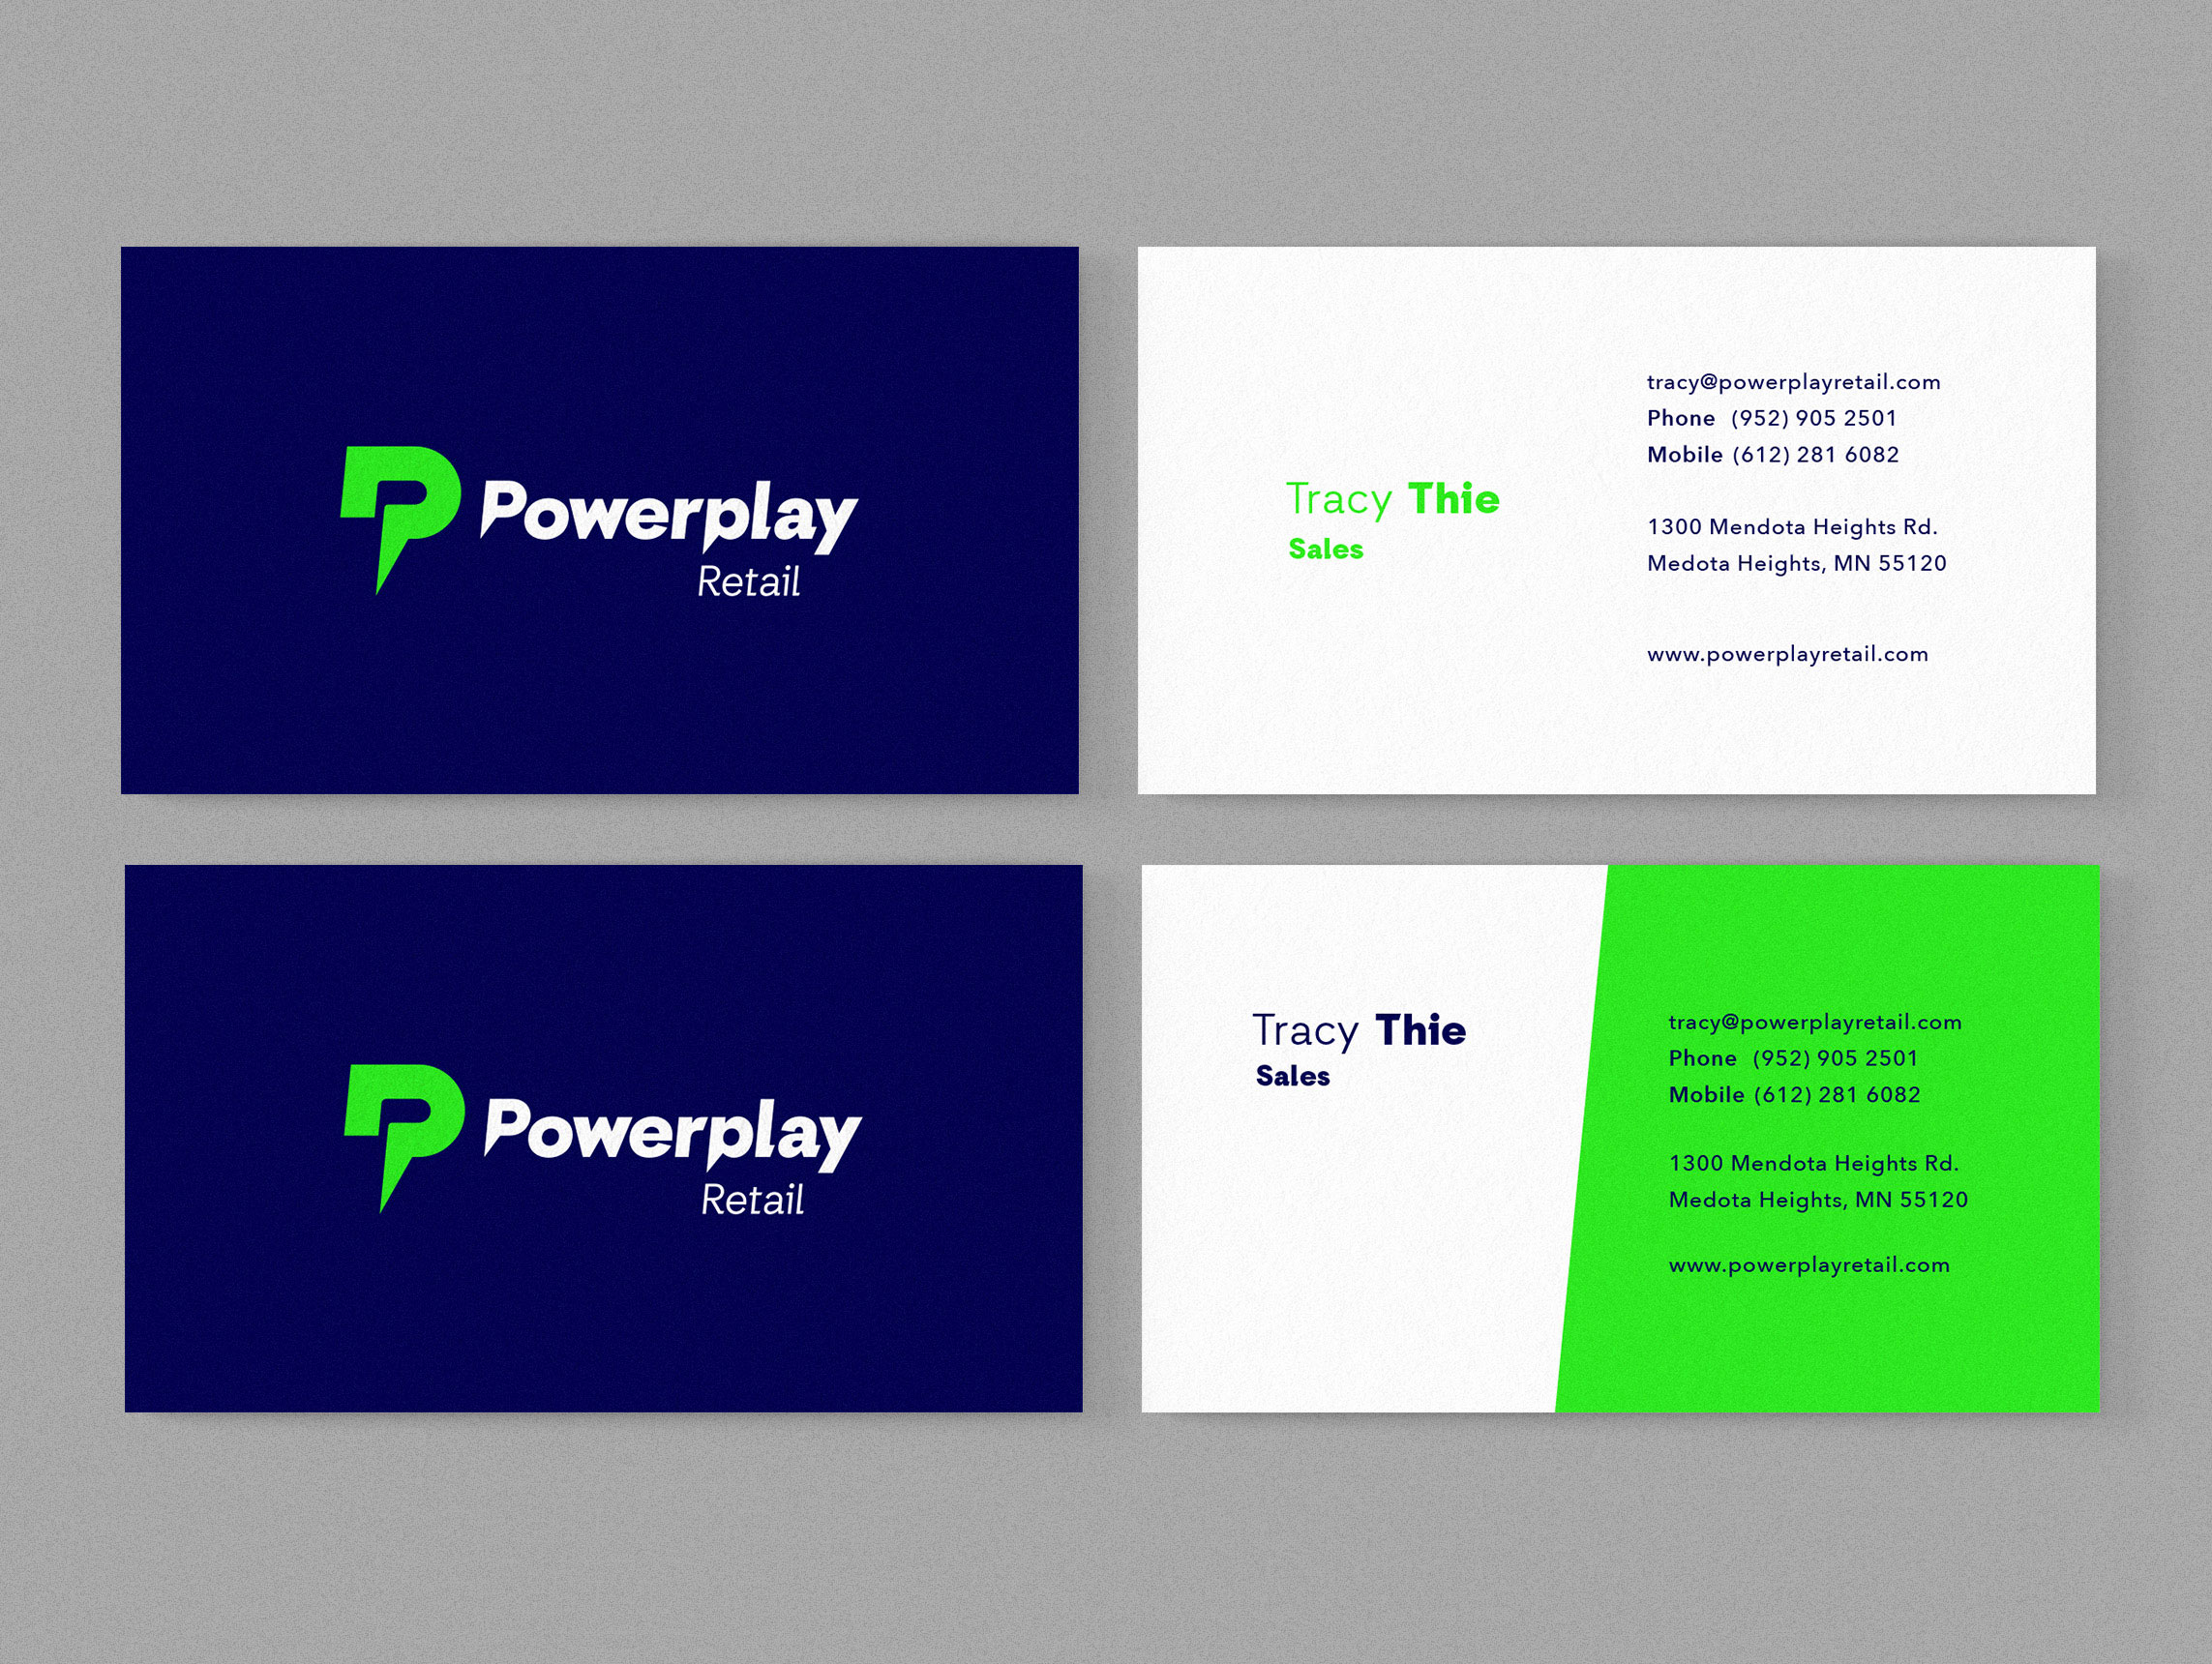 Powerplay Retail new brand identity applied to business cards